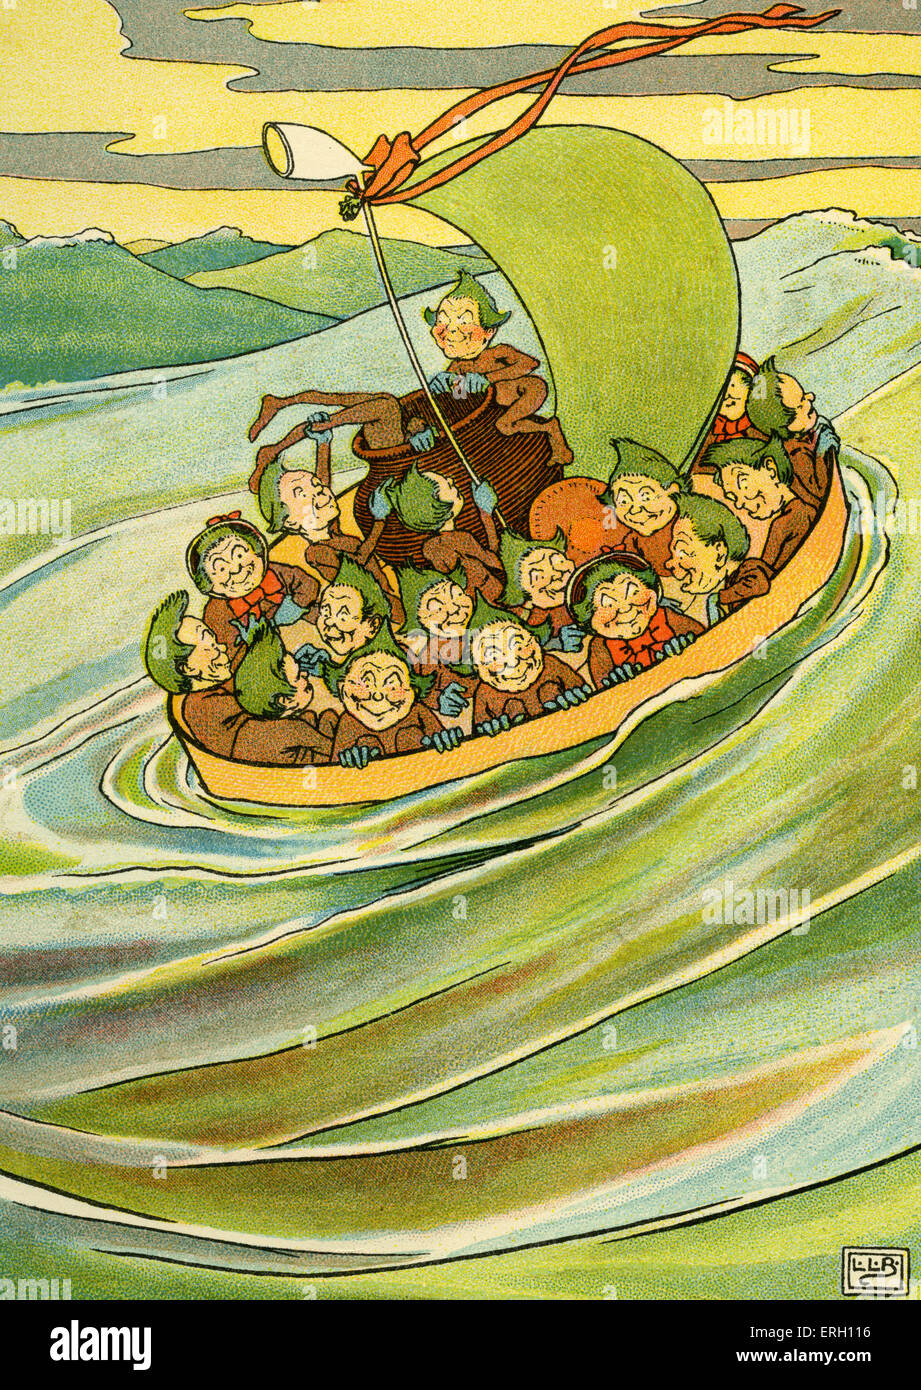 Edward Lear 's The Jumblies: 'They went to sea in a Sieve, they did'. Illustration by L. Leslie Brooke - Stock Image